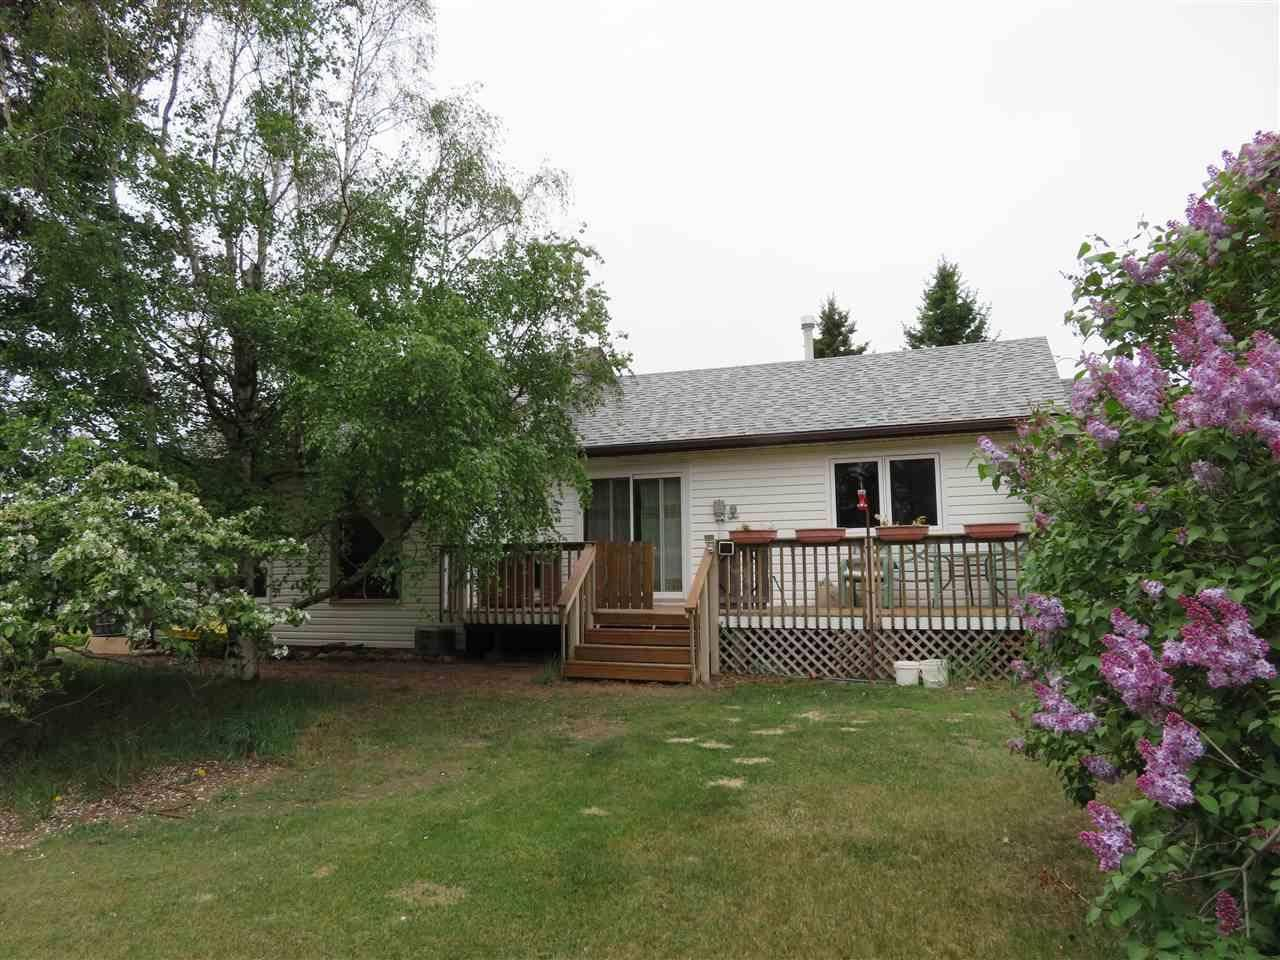 House for sale at 60116 Rge Rd Nw Rural Westlock County Alberta - MLS: E4161940